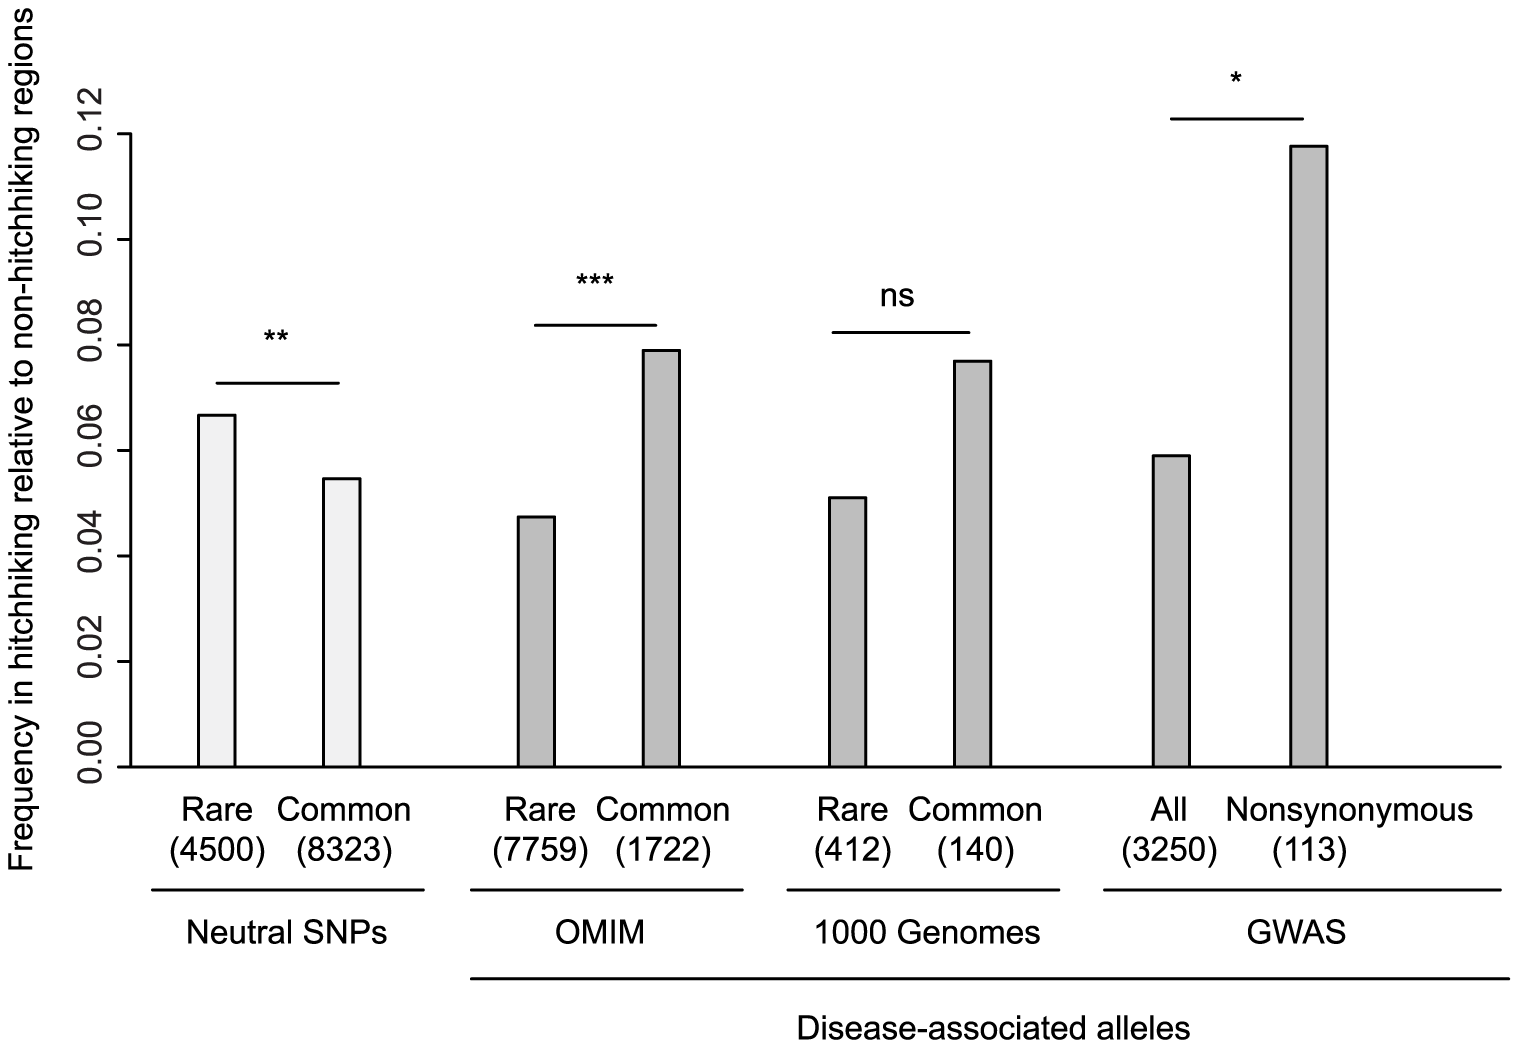 Enrichment of disease-associated alleles in hitchhiking relative to non-hitchhiking regions.